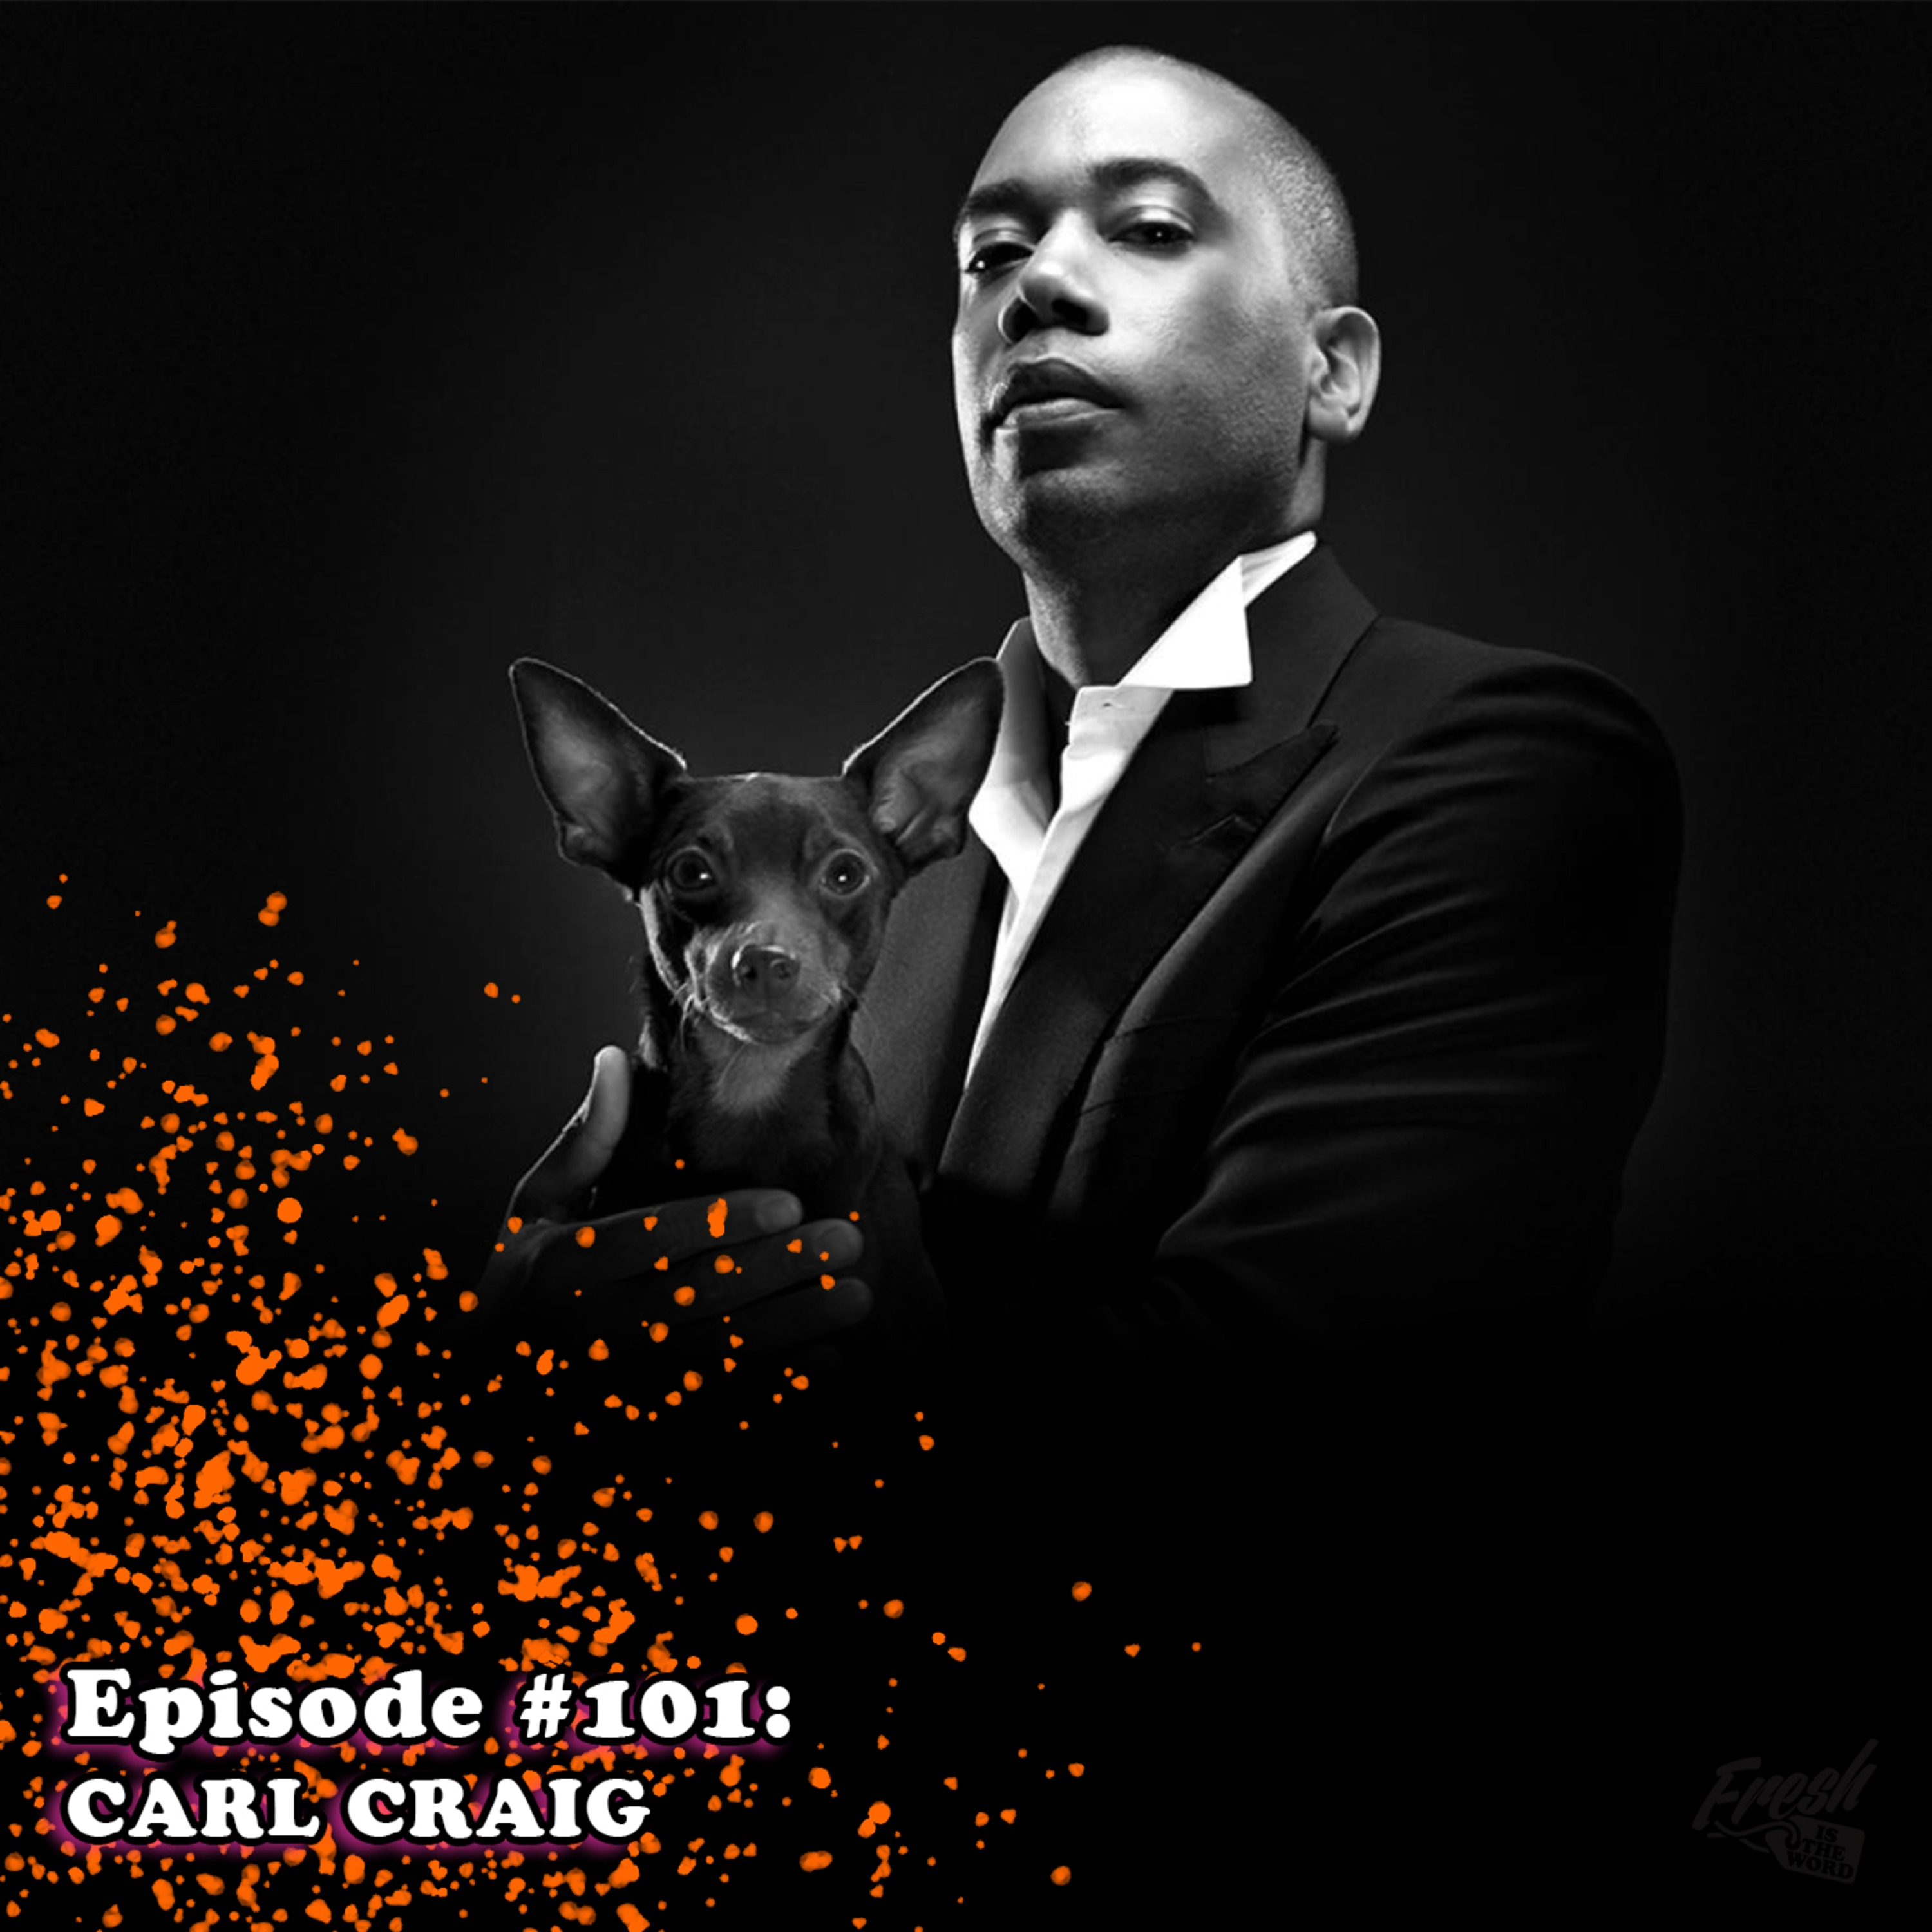 Episode #101: Carl Craig - Producer/DJ, Techno Pioneer from Detroit